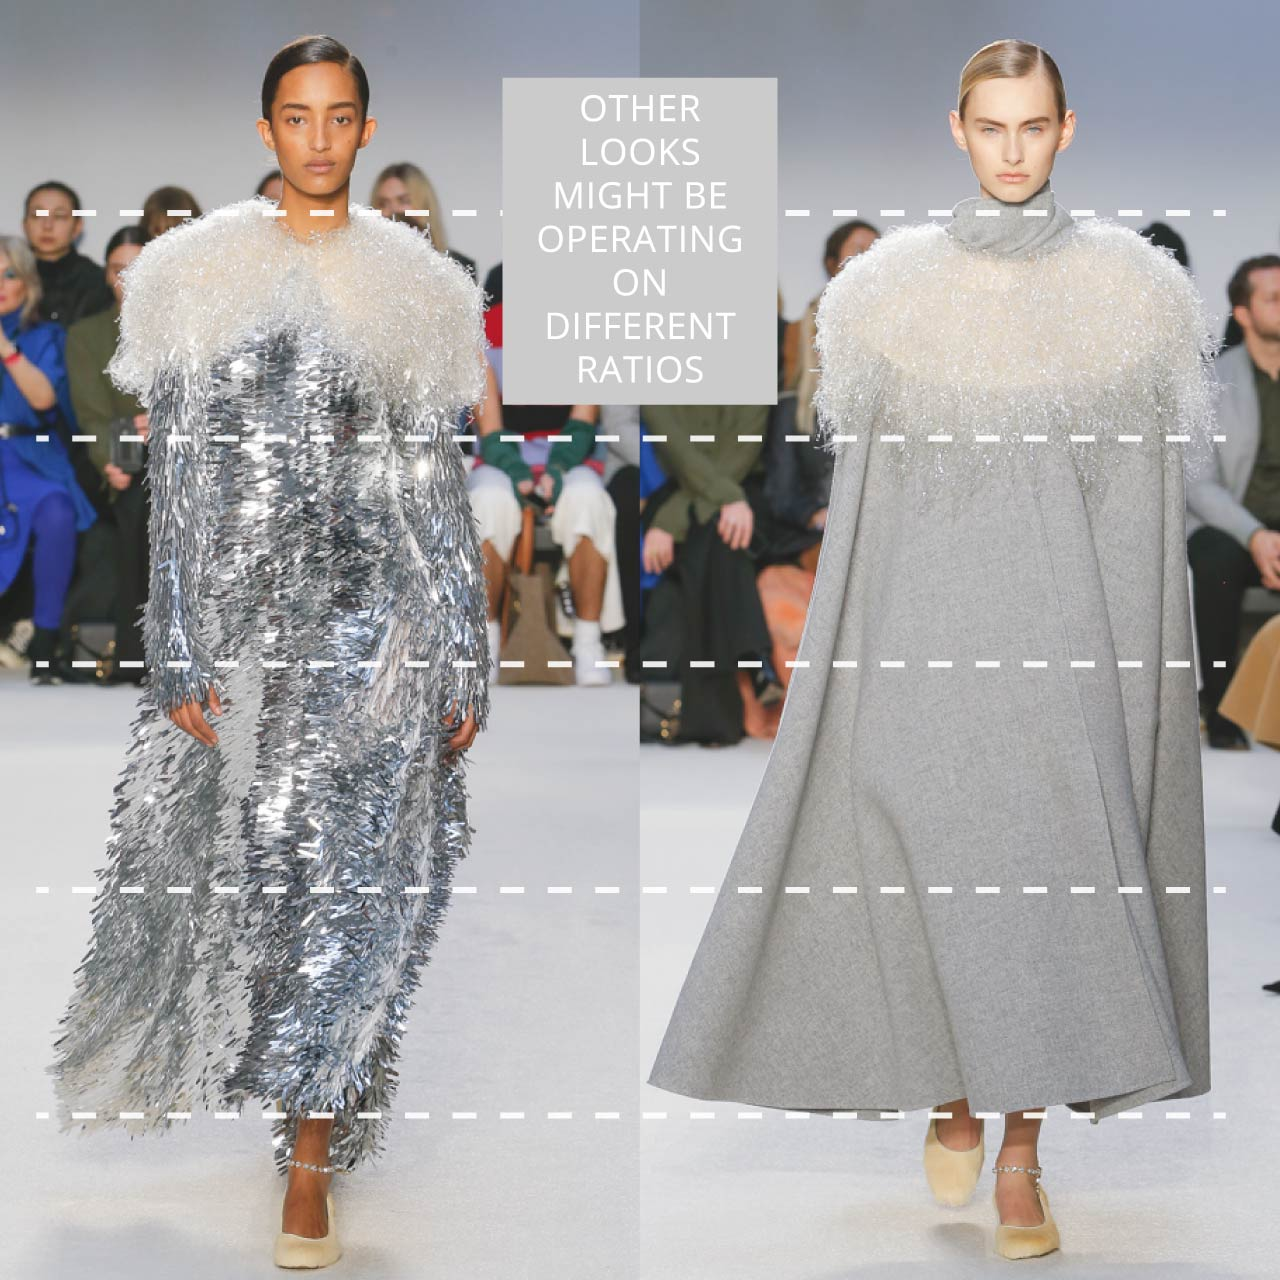 The Rule of Thirds Applied to JW Anderson | The Cutting Class. Other looks may be operating on different ratios. AW20.